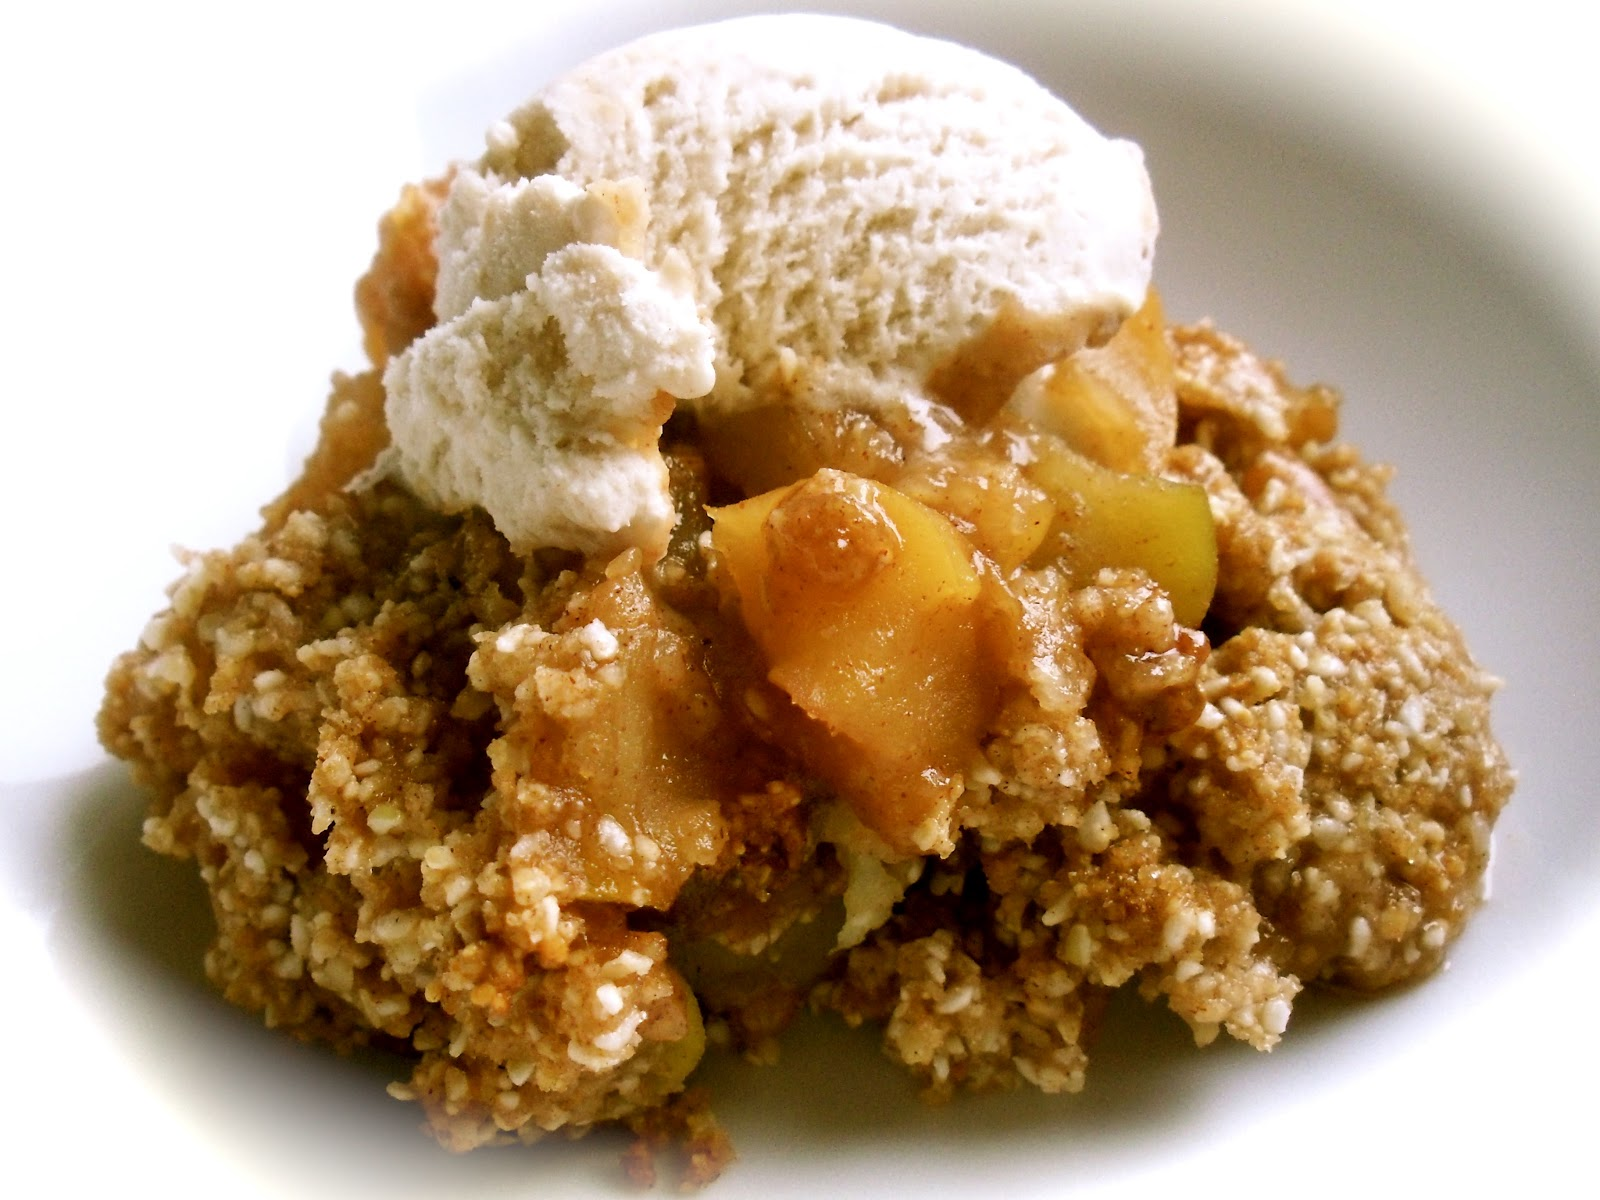 ... - The traveling vegan chef: Gluten-free Vegan Toffee Apple Crisp